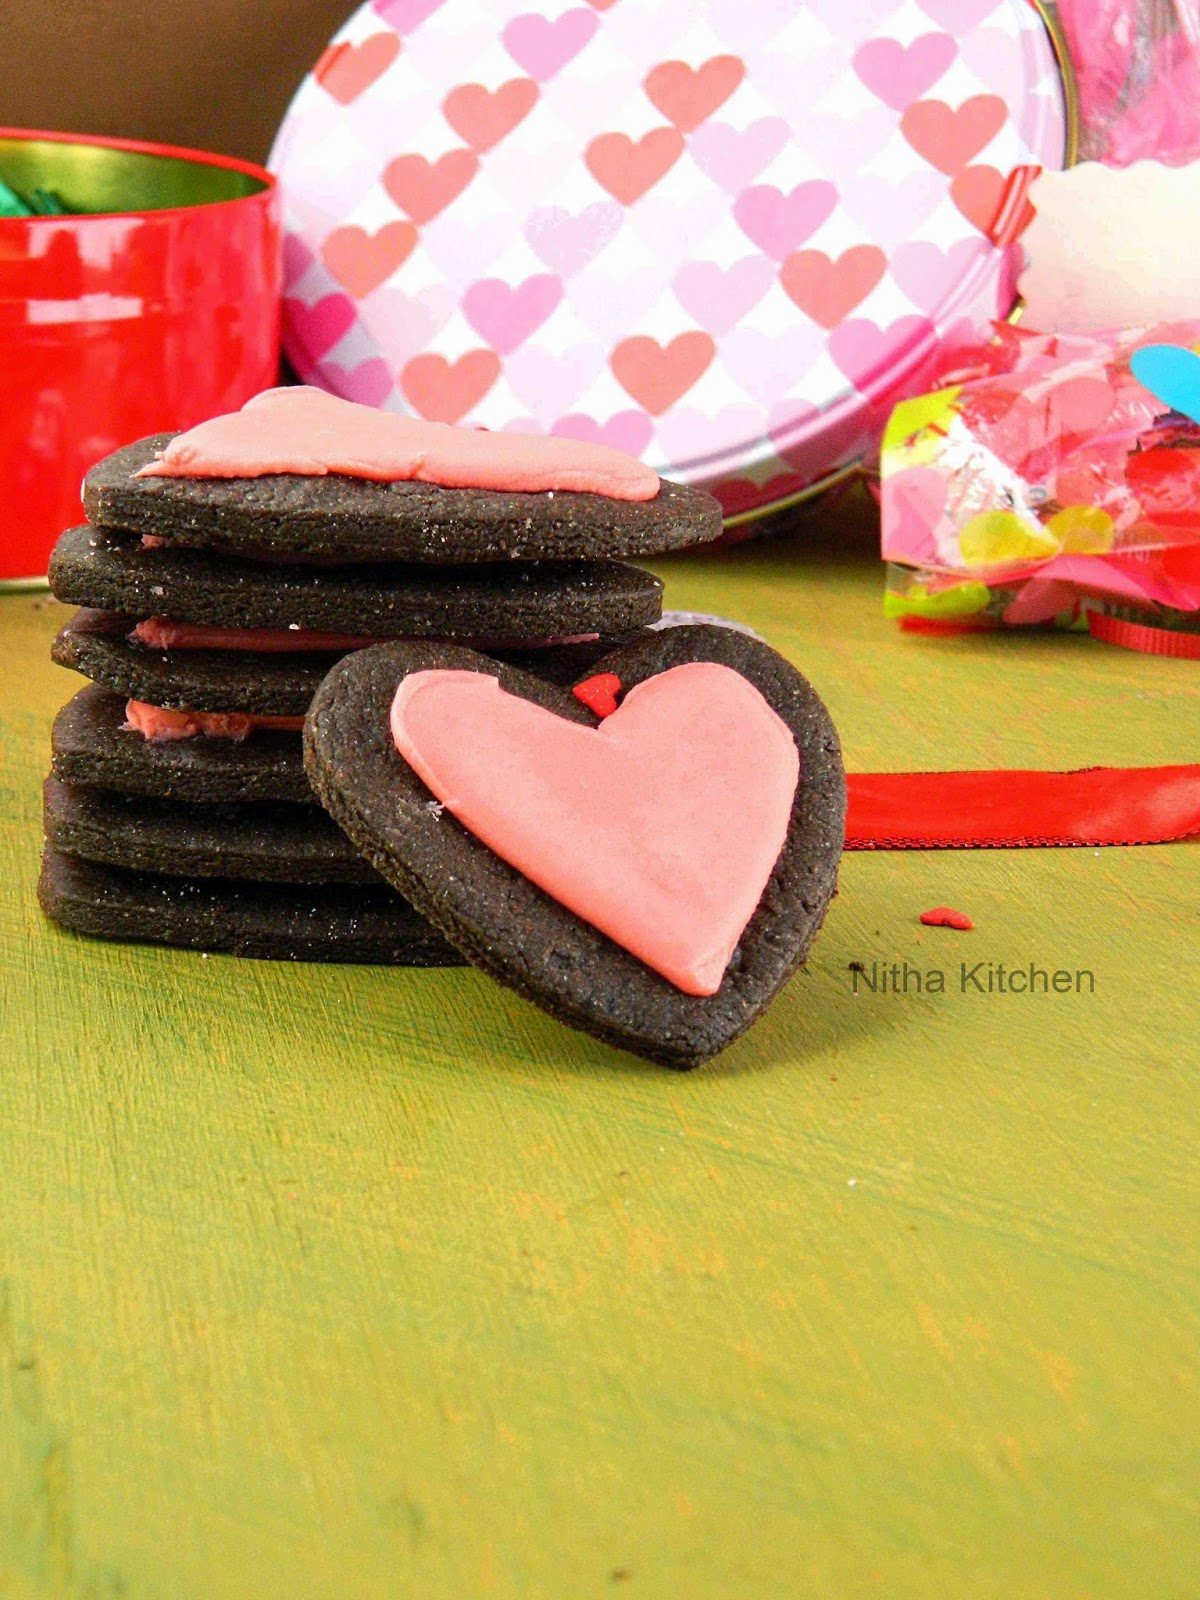 Egg Free Valentines Chocolate Sugar Cookies with Royal Icing | Heart Shaped Sugar Cookies Recipe